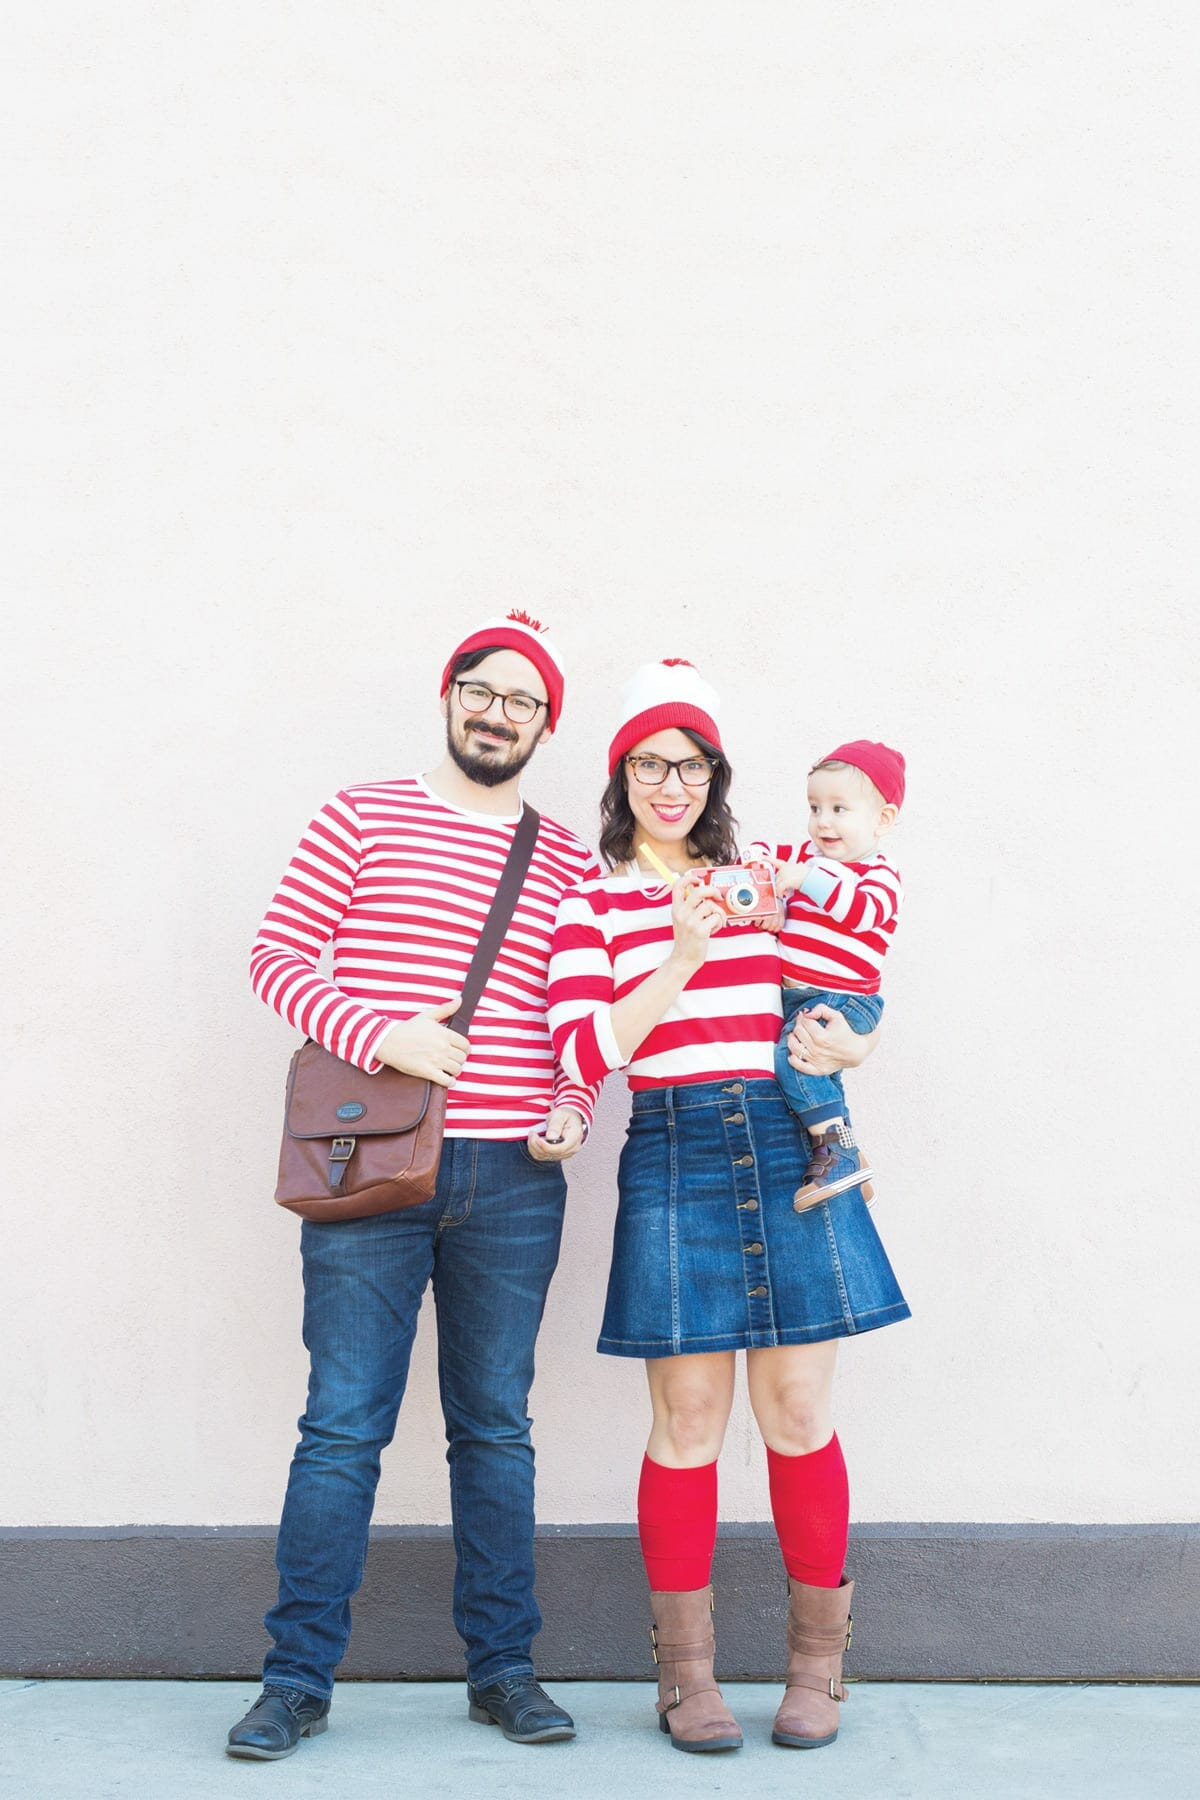 43 Easy Costumes With Normal Clothes For Halloween